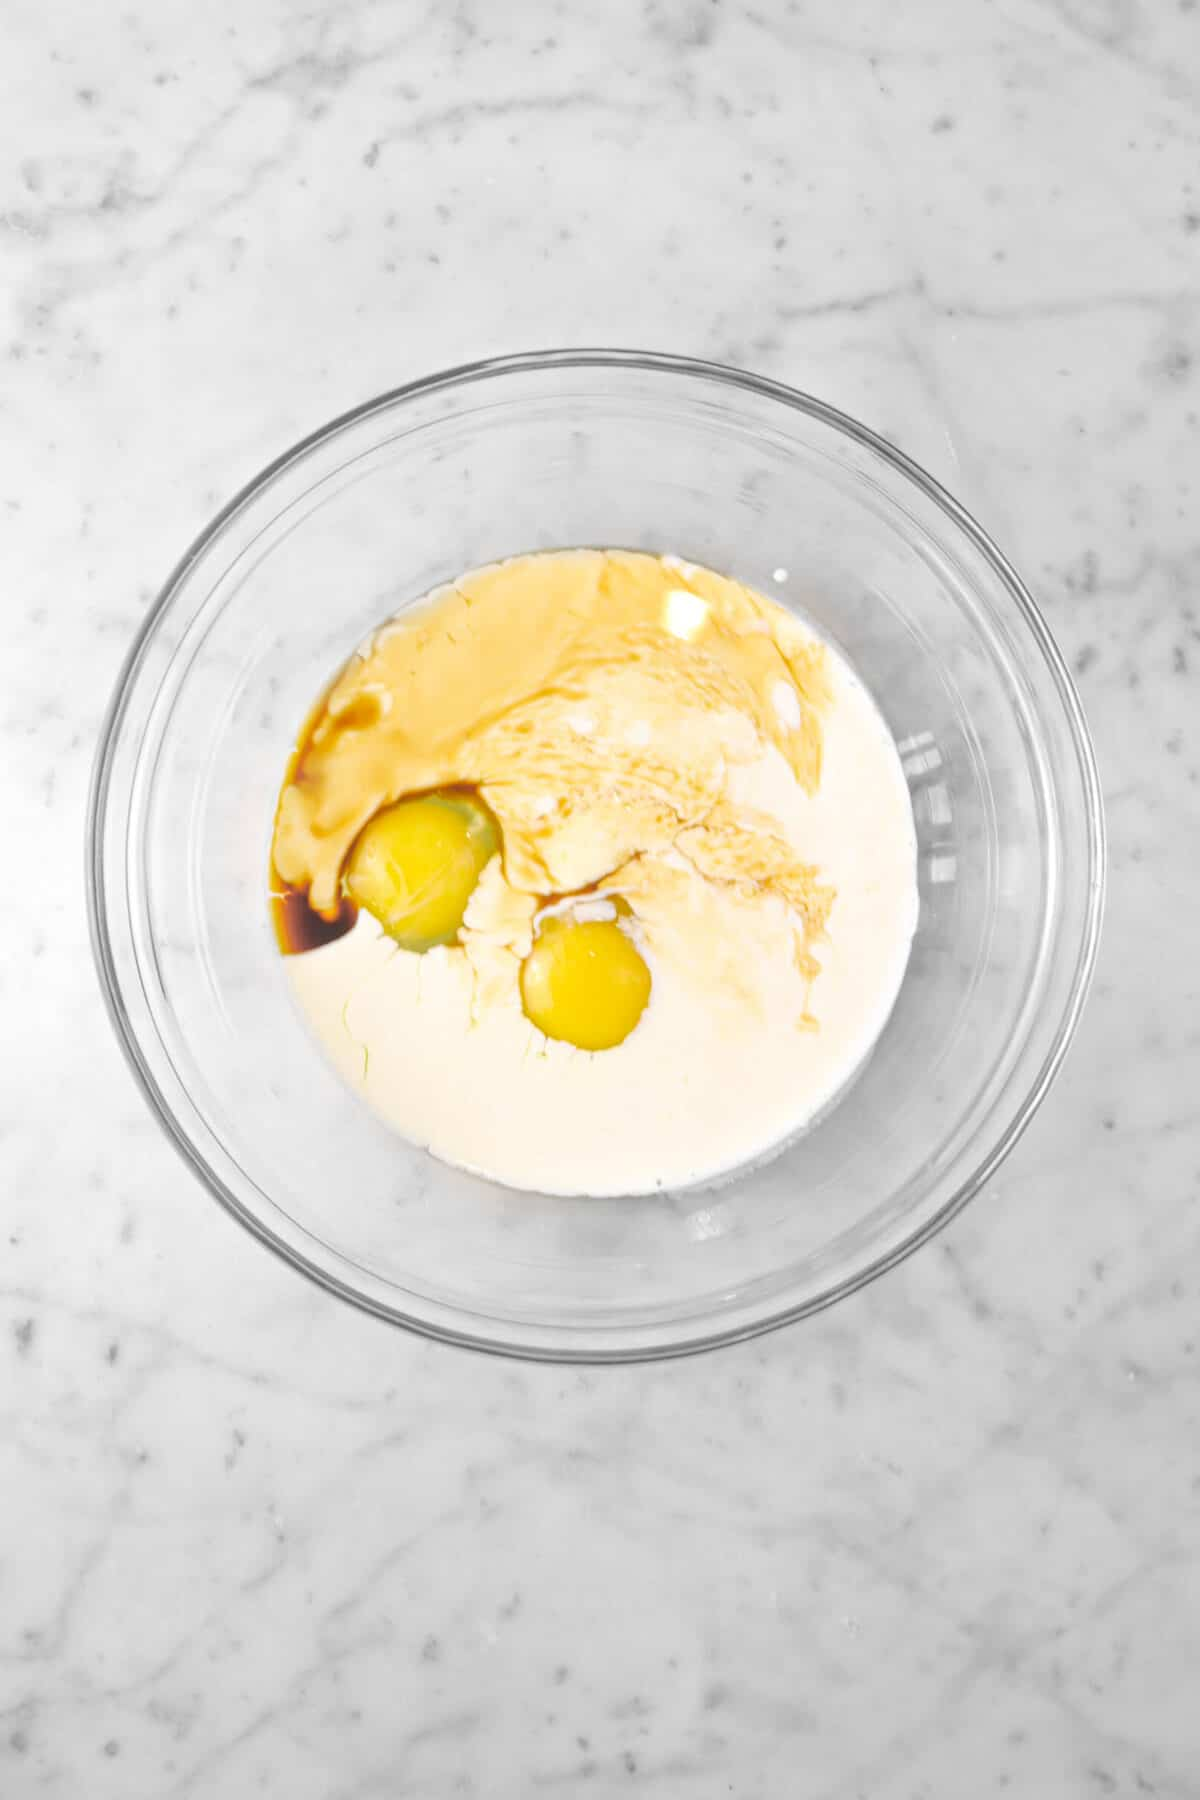 eggs, milk, and vanilla in a glass bowl